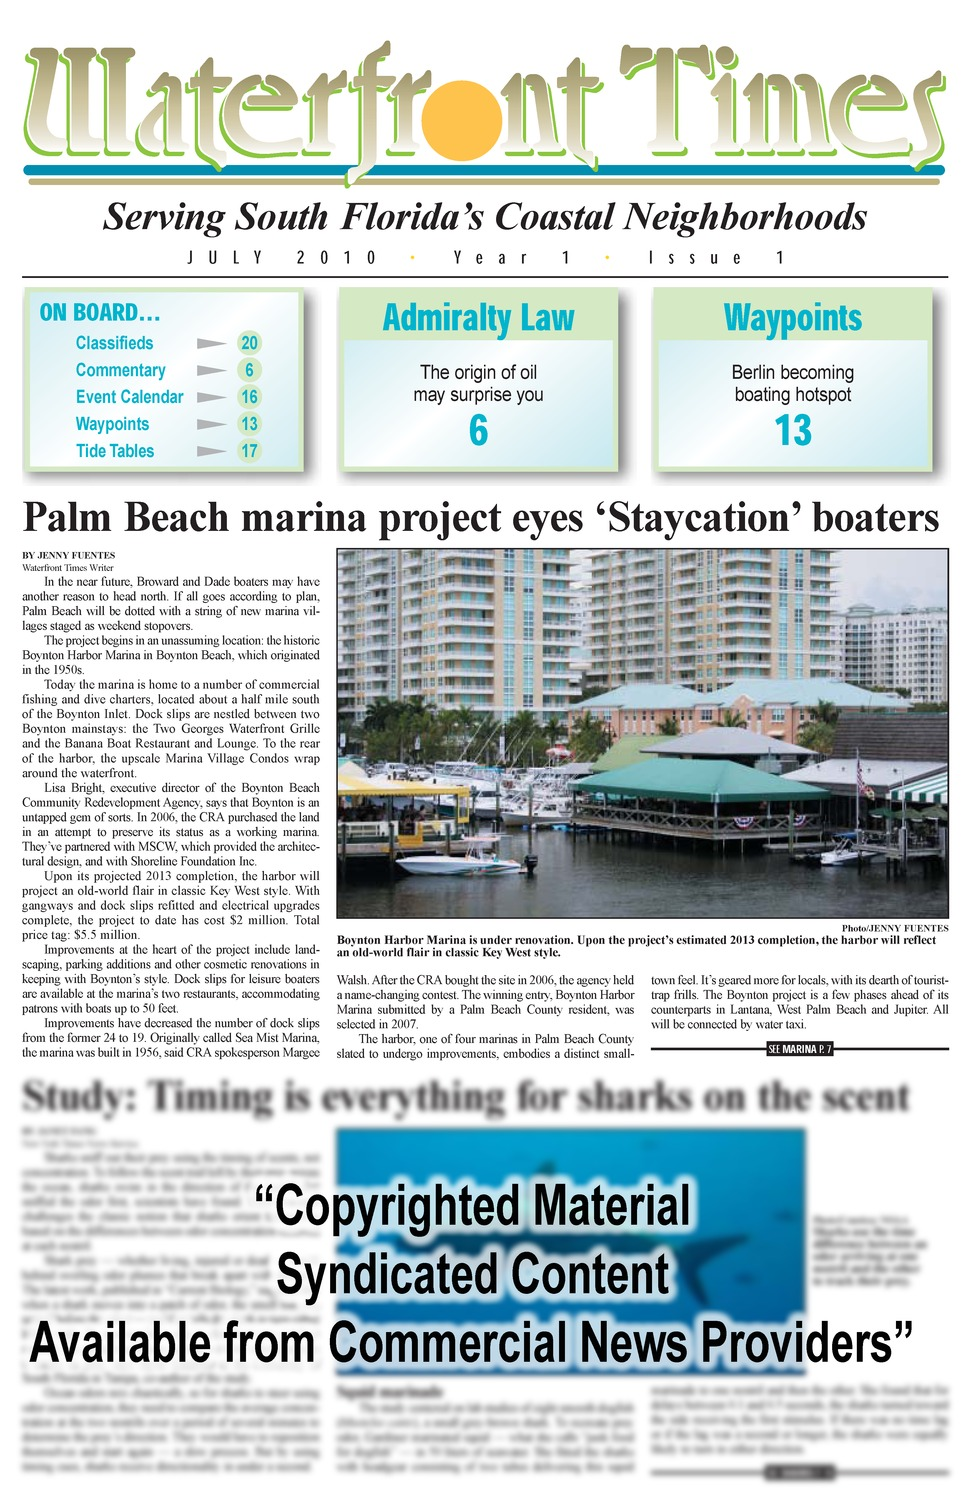 Waterfront times - Page 1